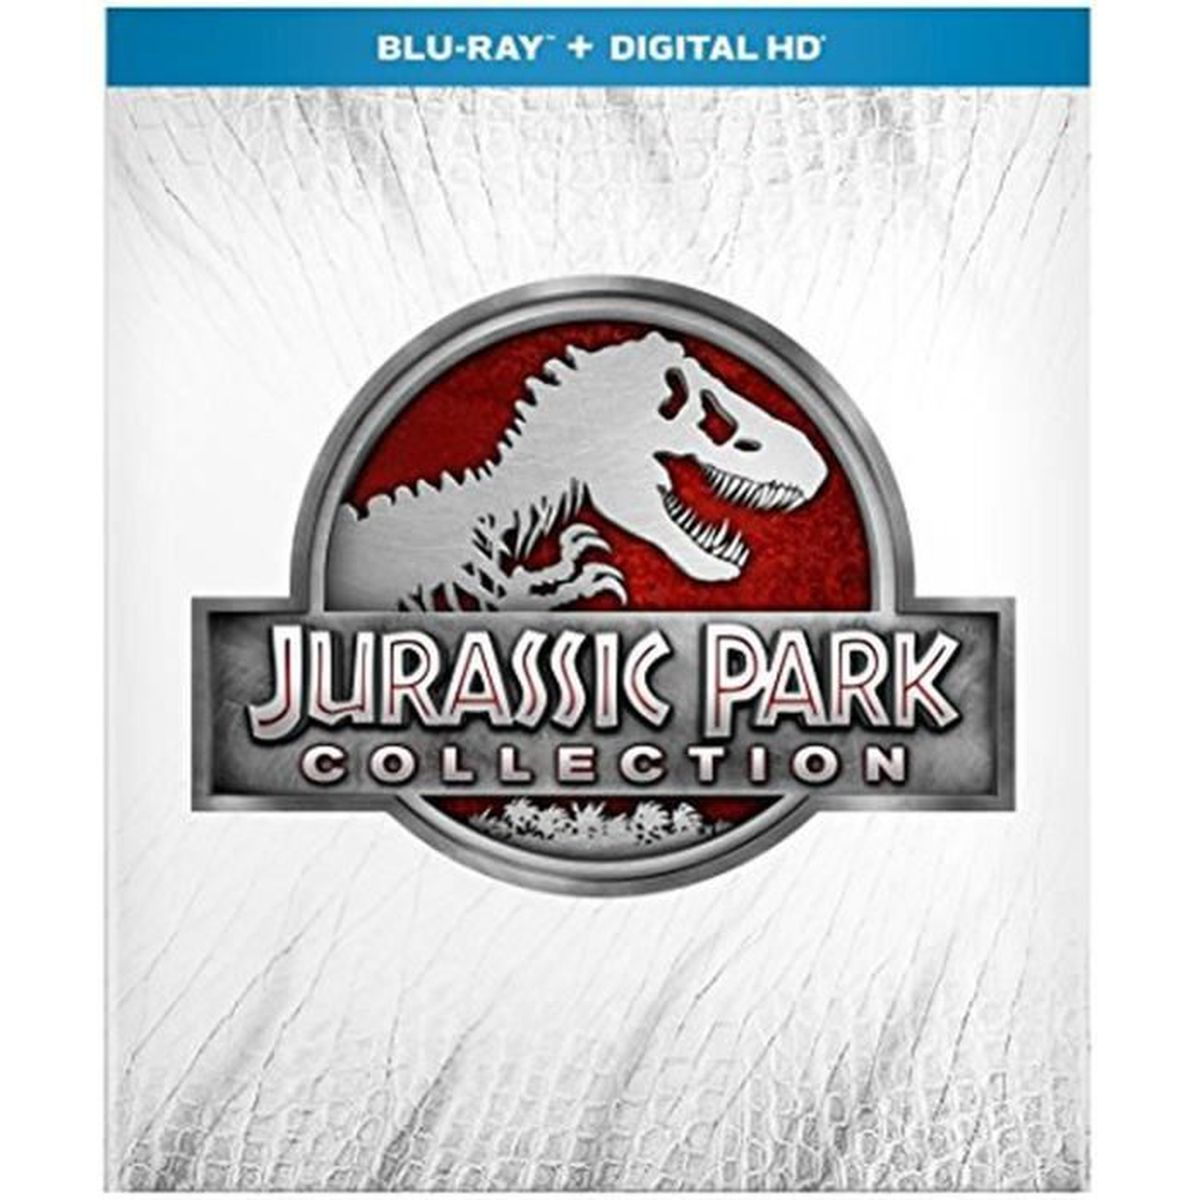 BLU-RAY FILM JURASSIC PARK COLLECTION JURASSIC PARK - The Lost